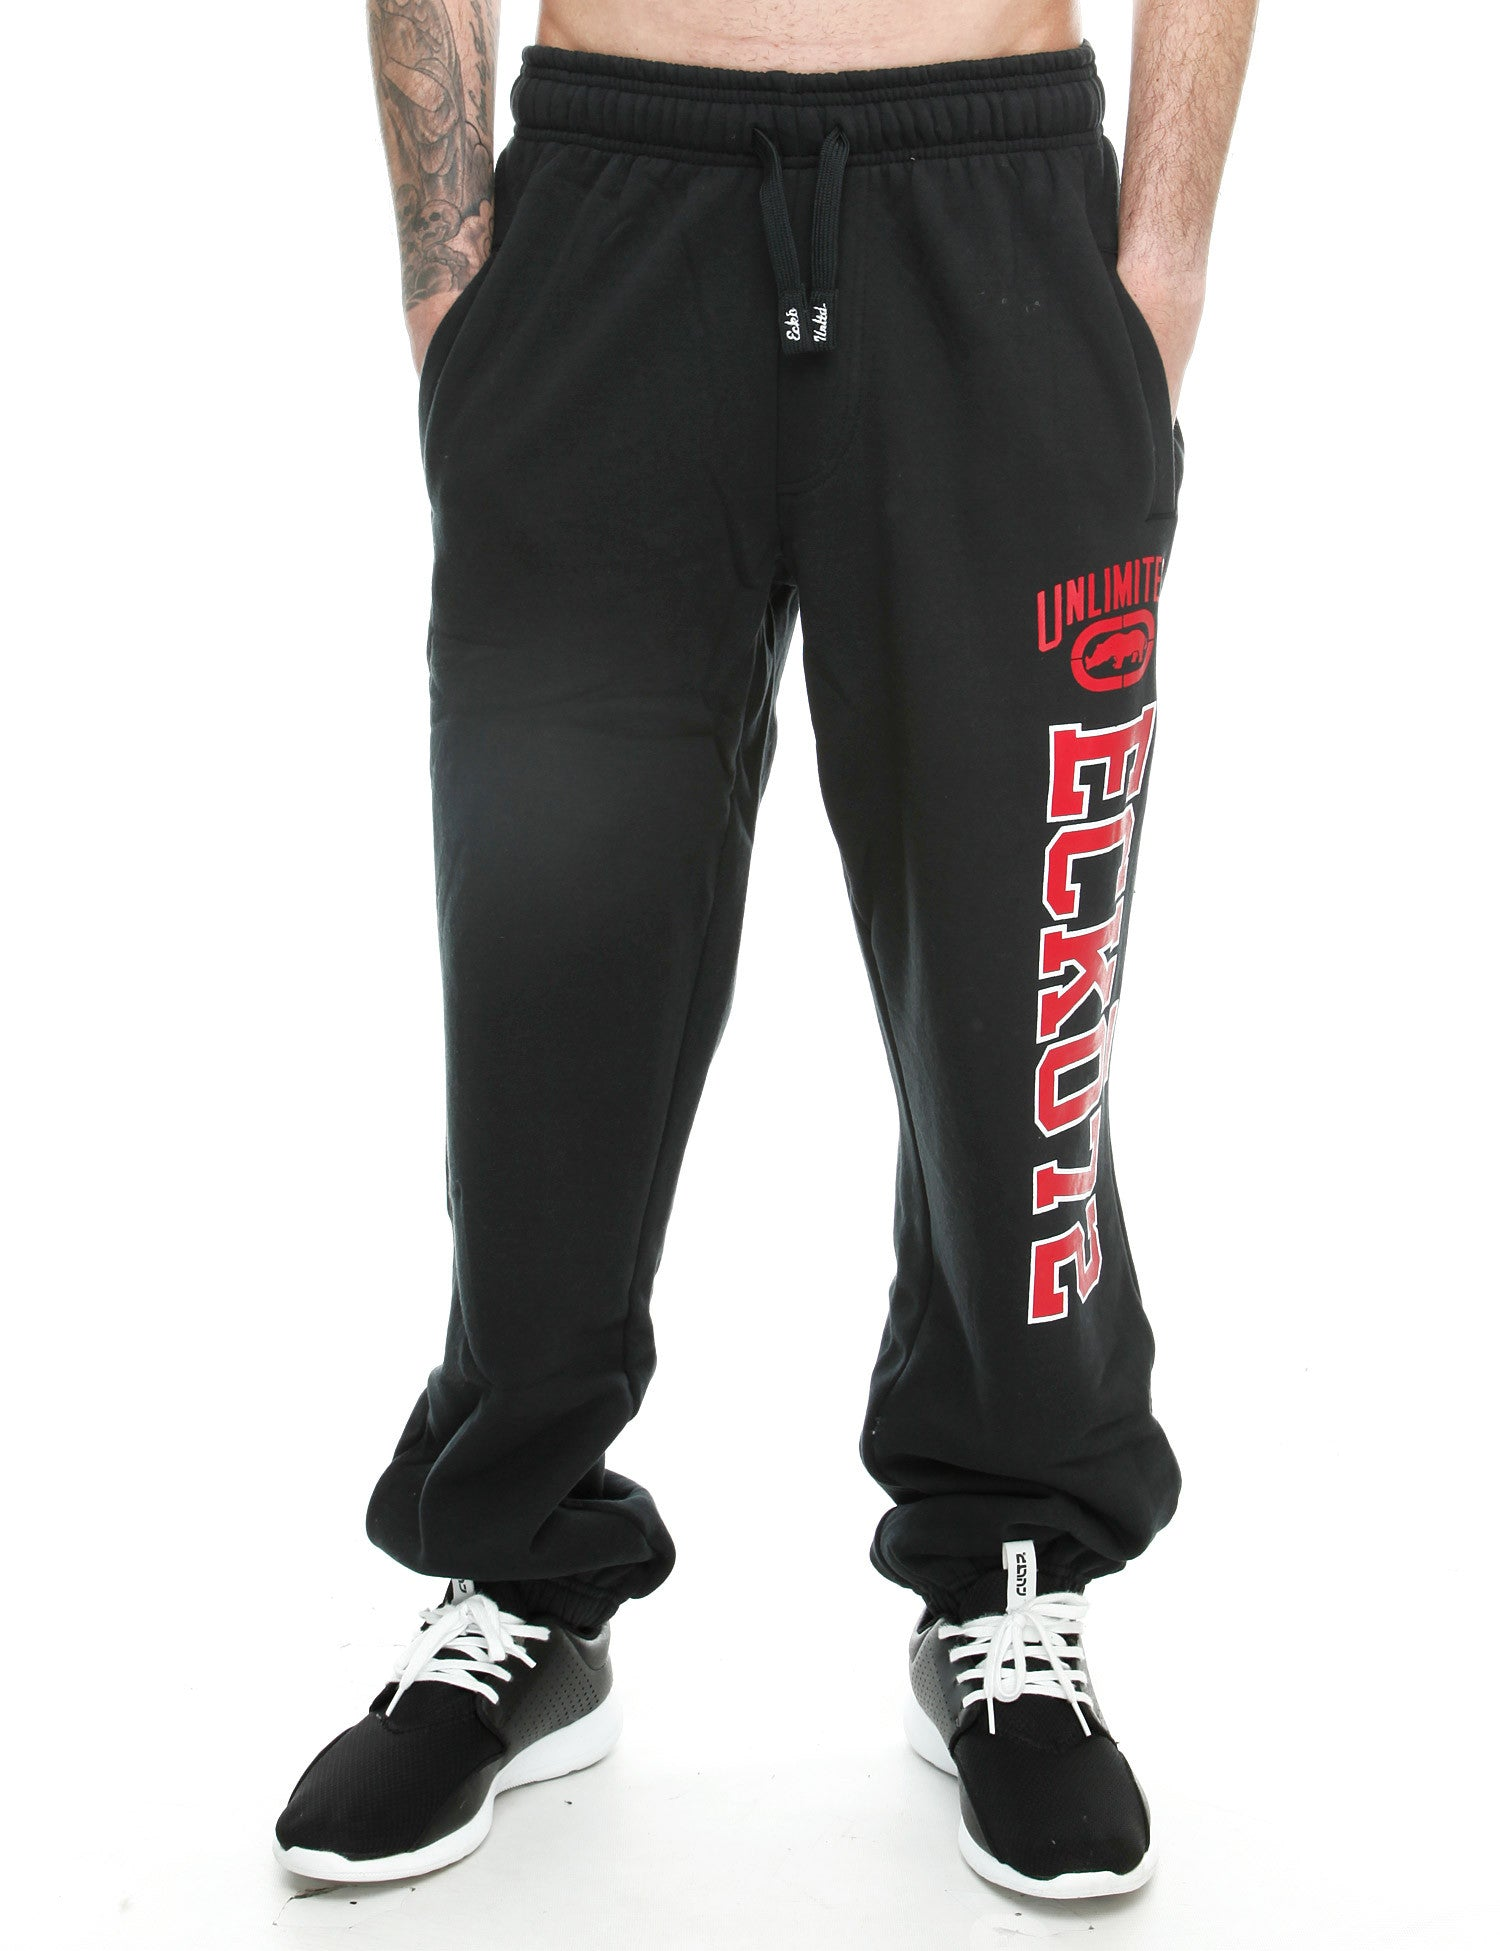 Image of Ecko Vogue Sweatpant ESK03646 Anthracite Black